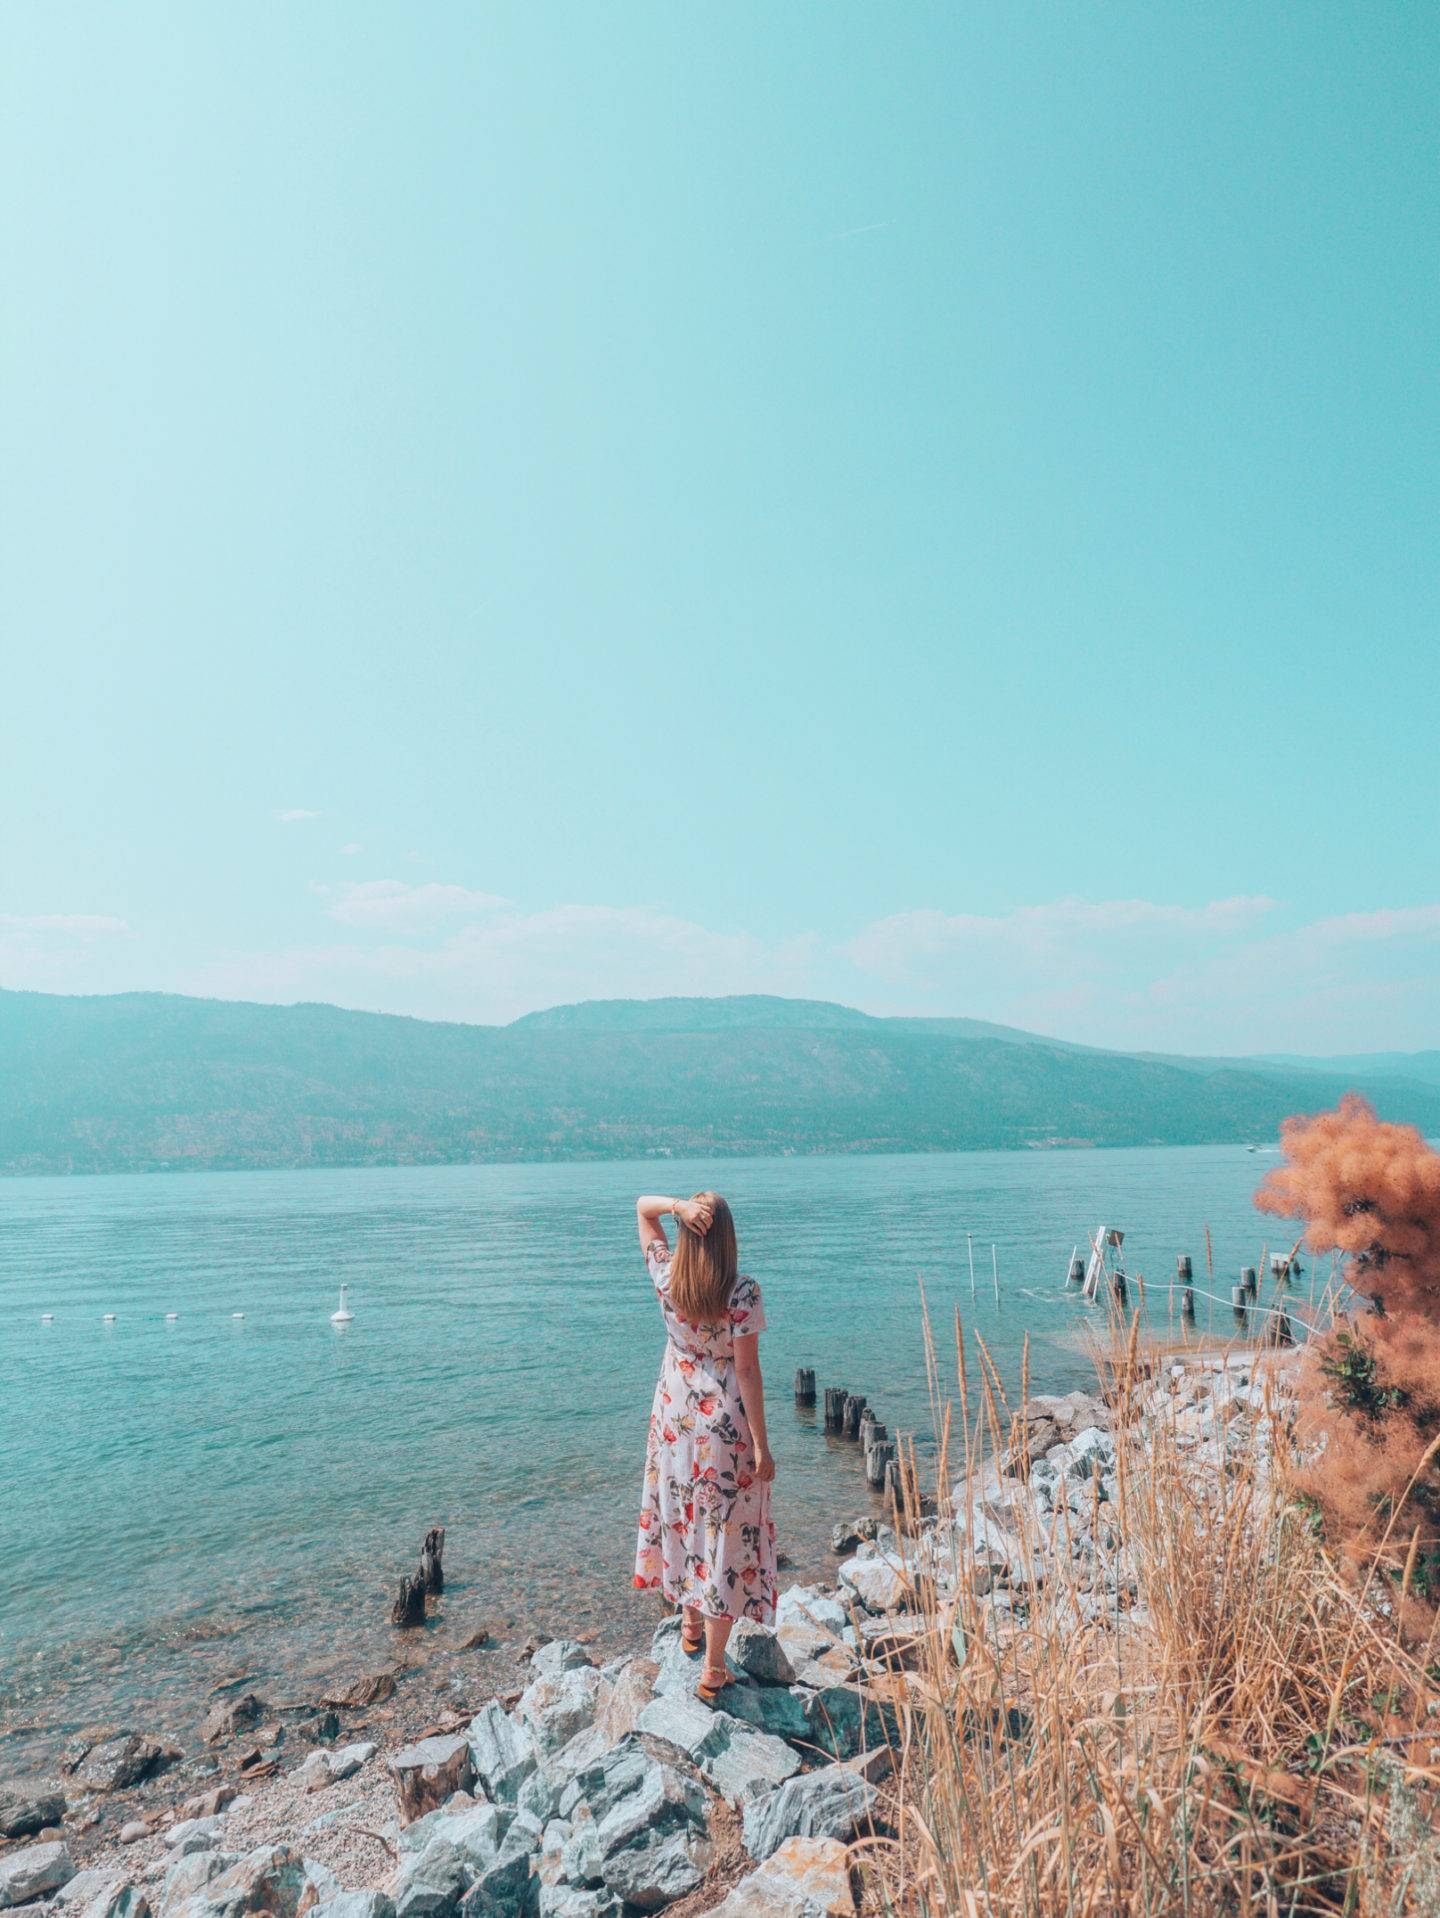 Looking for the most beautiful Instagrammable places in Kelowna? Check out this guide to find the best photography spots in Kelowna! Pictured here: Okanagan Lake